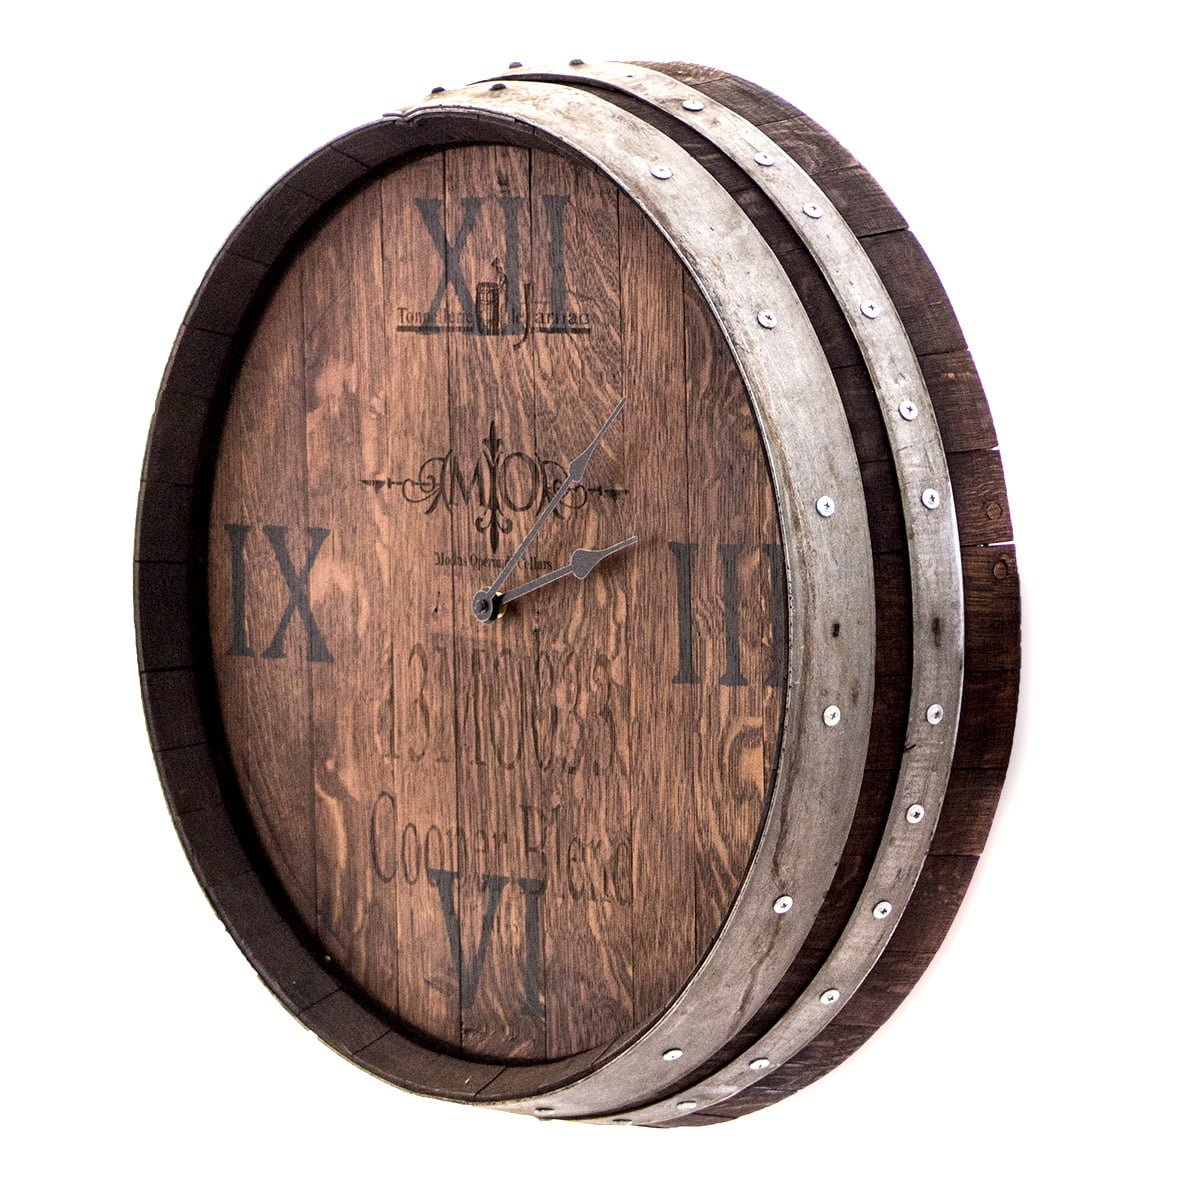 Barrel End Wall Clock With Staves O Floinn Decor